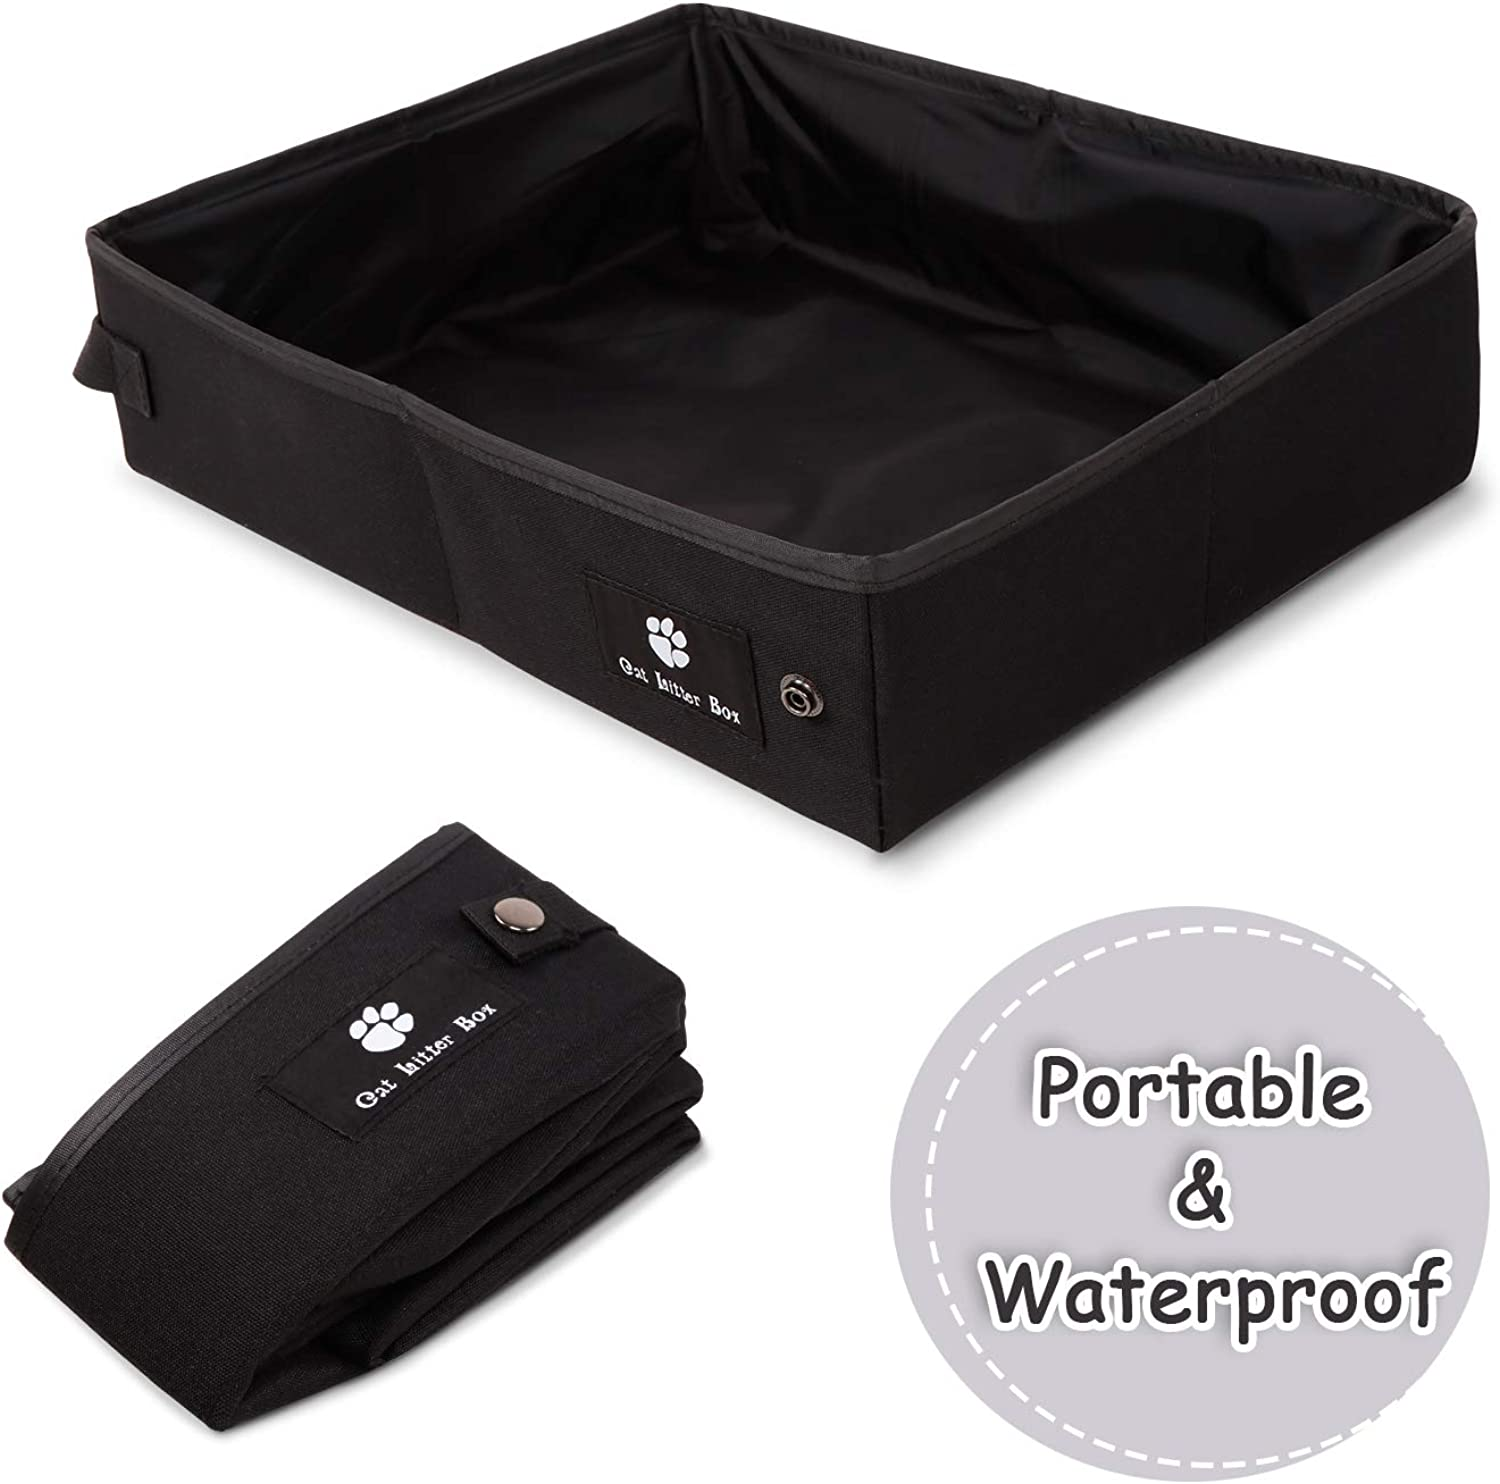 Anyshock Collapsible Portable Cat Litter Box for Travel Camping, Waterproof Open Litter Pan Carrier Easy to Carry and Clean Work Well as Portable Cat Beds(L, Black)